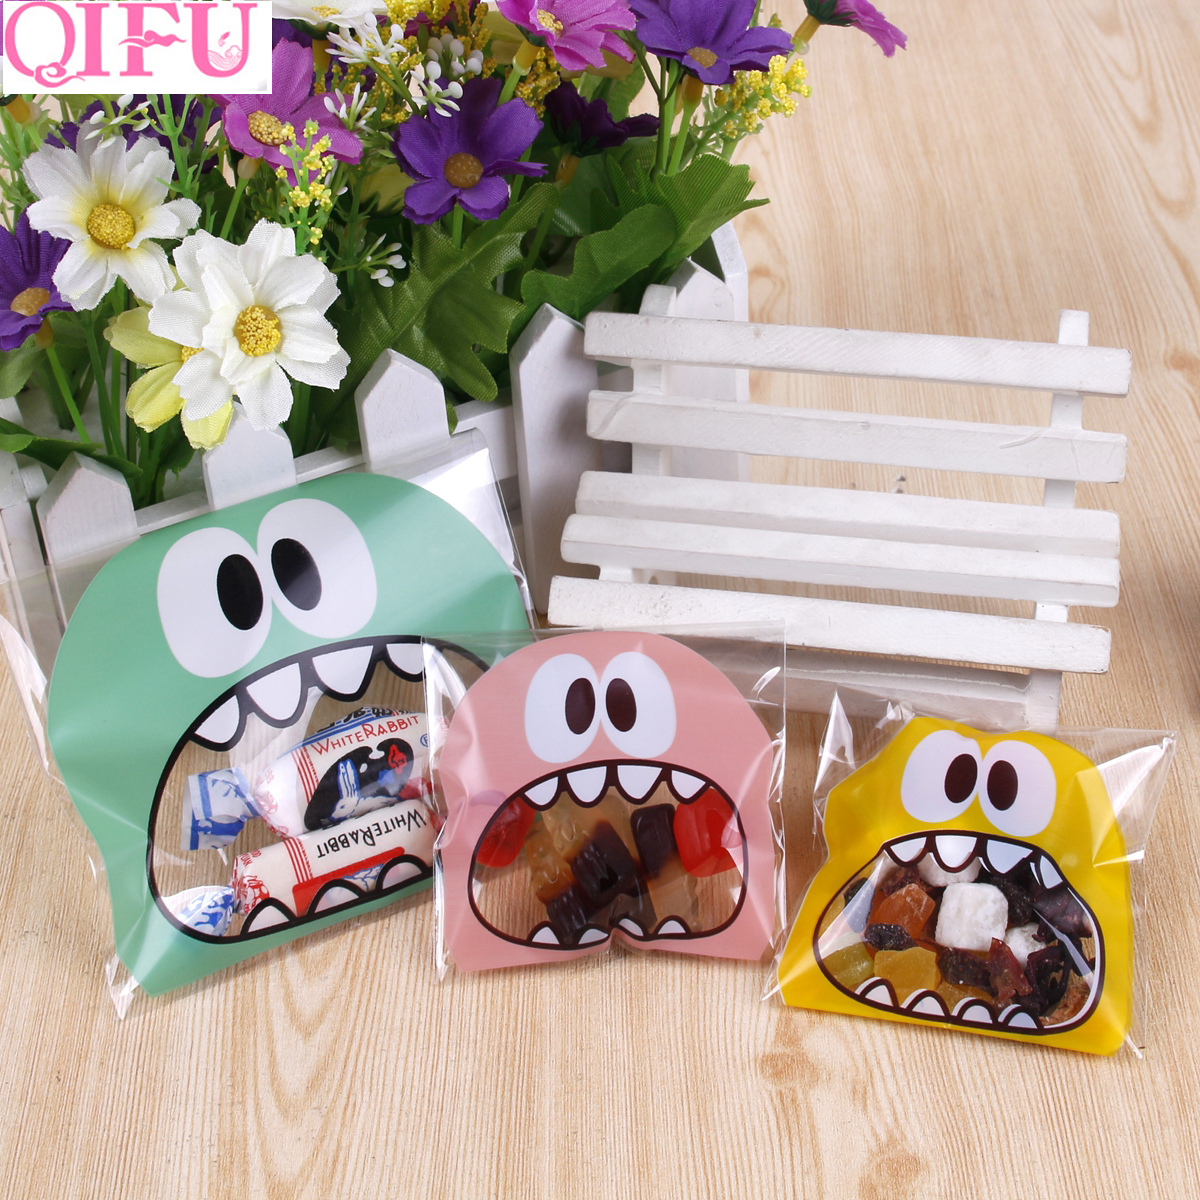 QIFU Plastic Transparent Frosted Cellophane Candy Cookie Gift Bag Package For DIY Biscuits Snack Baking Sticker Wedding Birthday